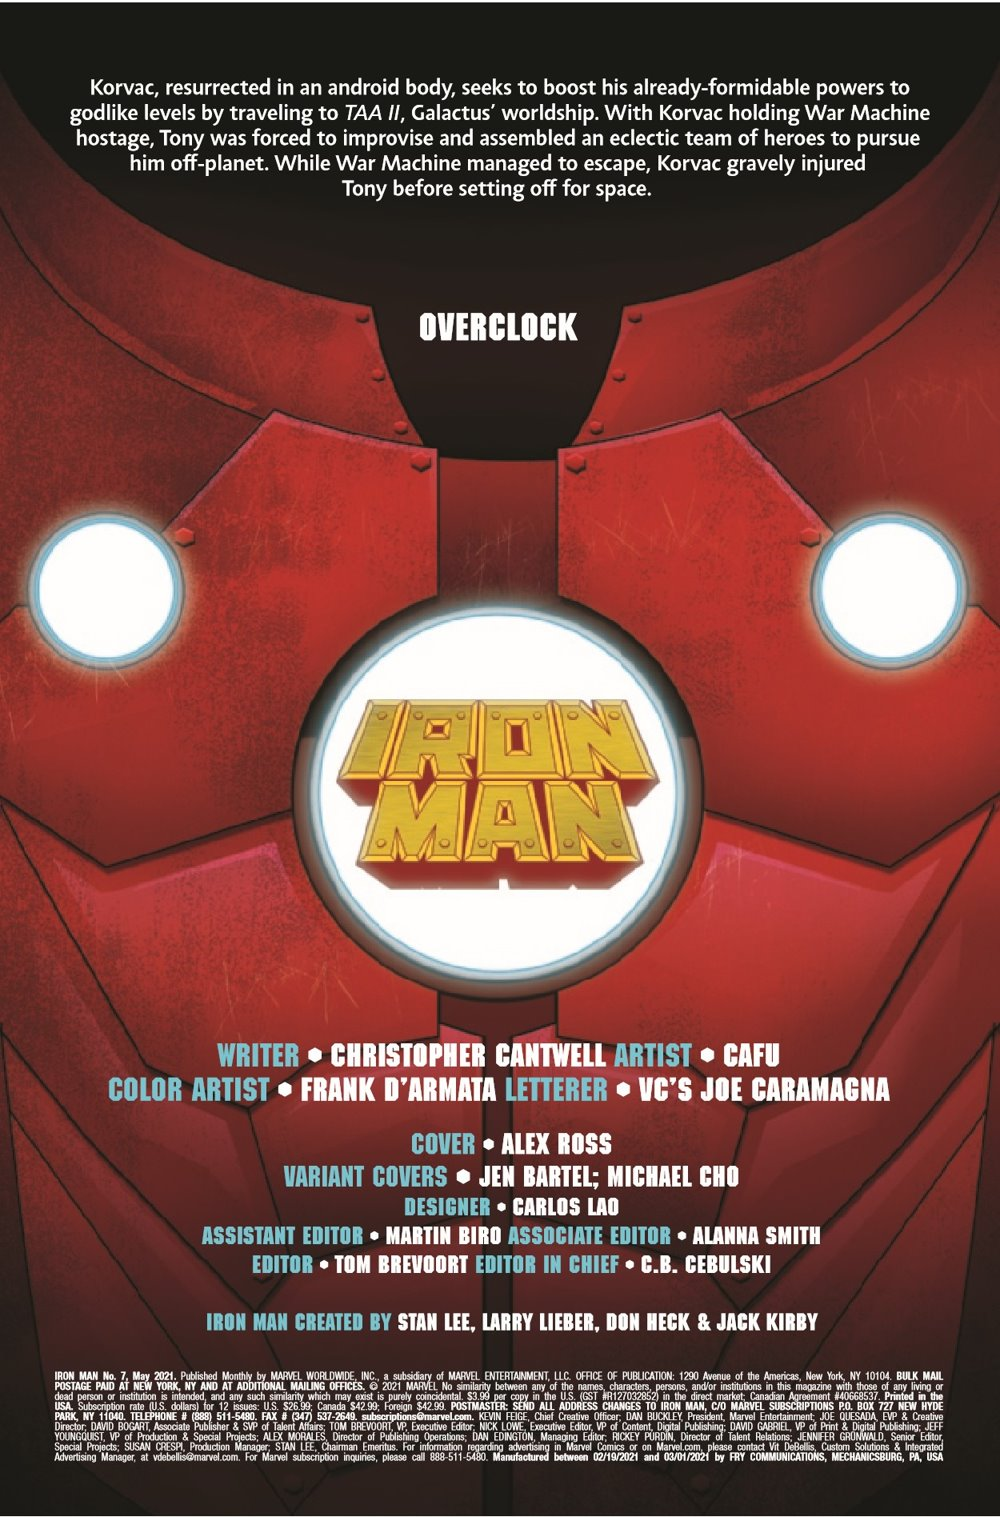 IM2020007_Preview-2 ComicList Previews: IRON MAN #7